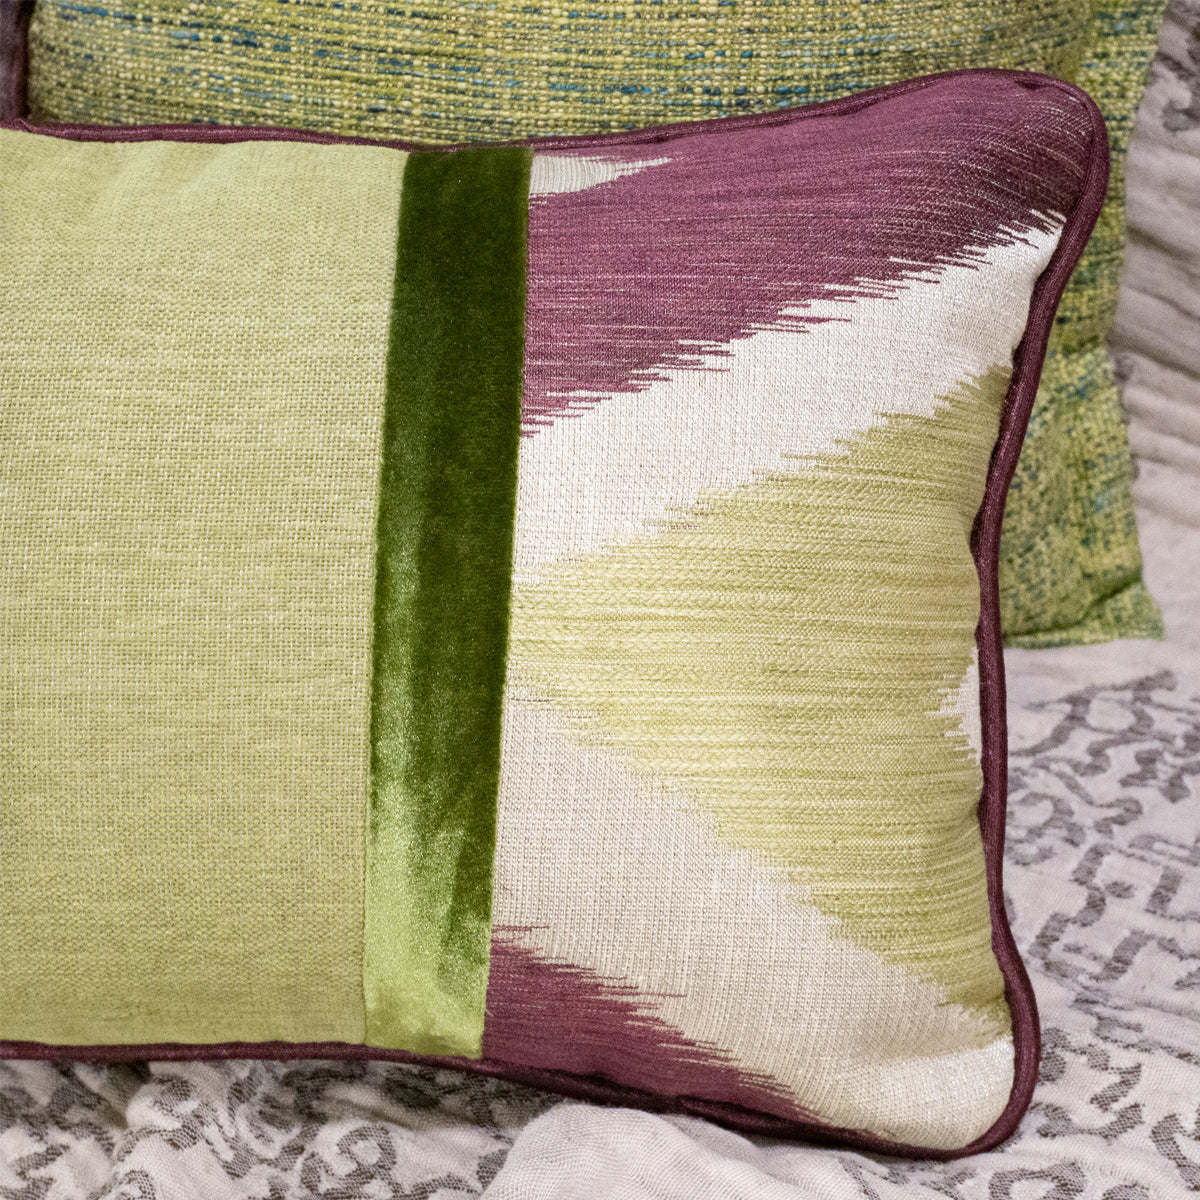 47×32cm角 コラージュクッション Harlequin Ethnic Green&Purple with Piping-B